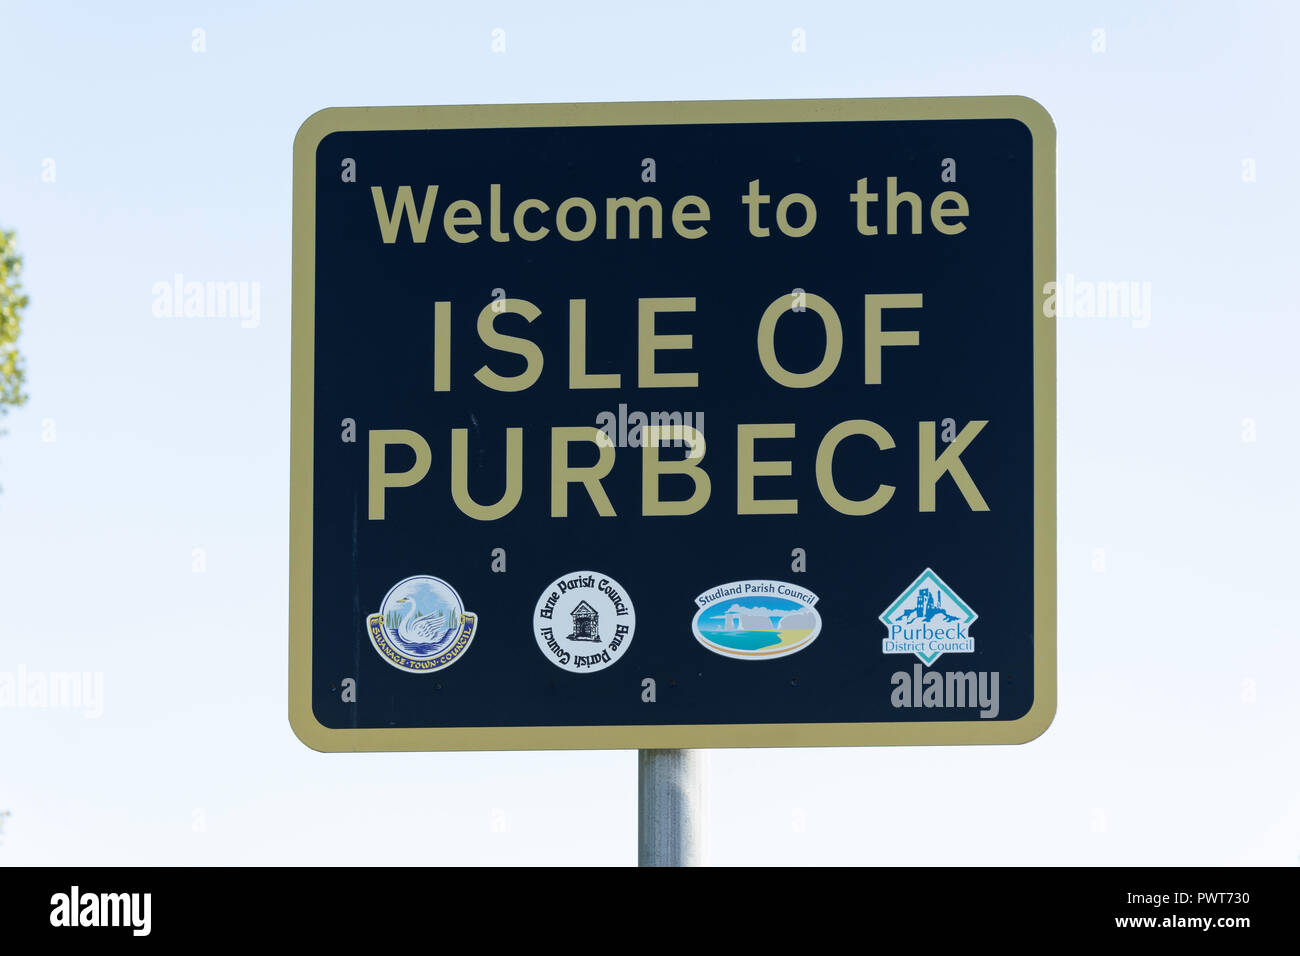 Welcome to the Isle of Purbeck sign, Wareham, Dorset, England, United Kingdom - Stock Image